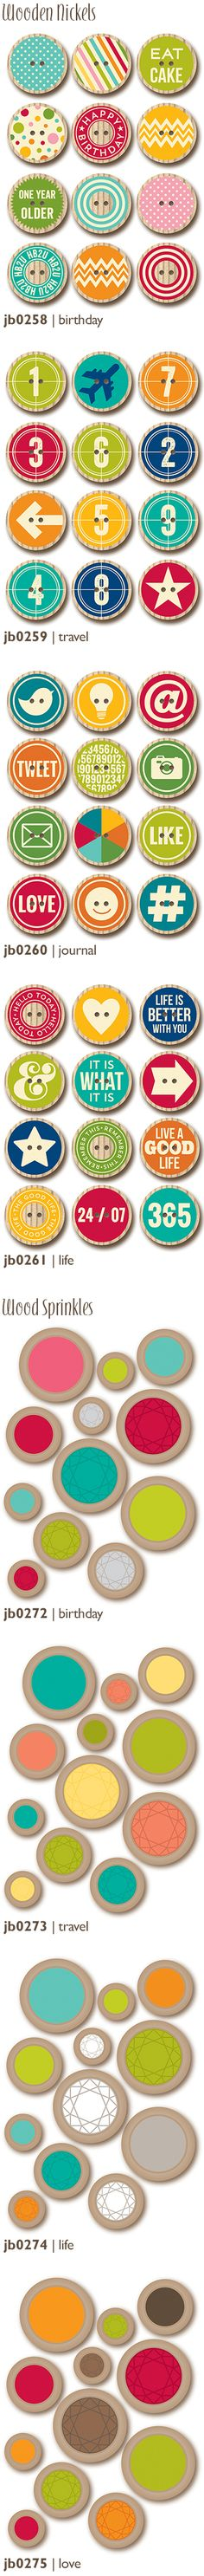 Wood Nickels and Wood Sprinkles - @Jill Meyers Guevara Soup Need to make these as technology coins/tokens